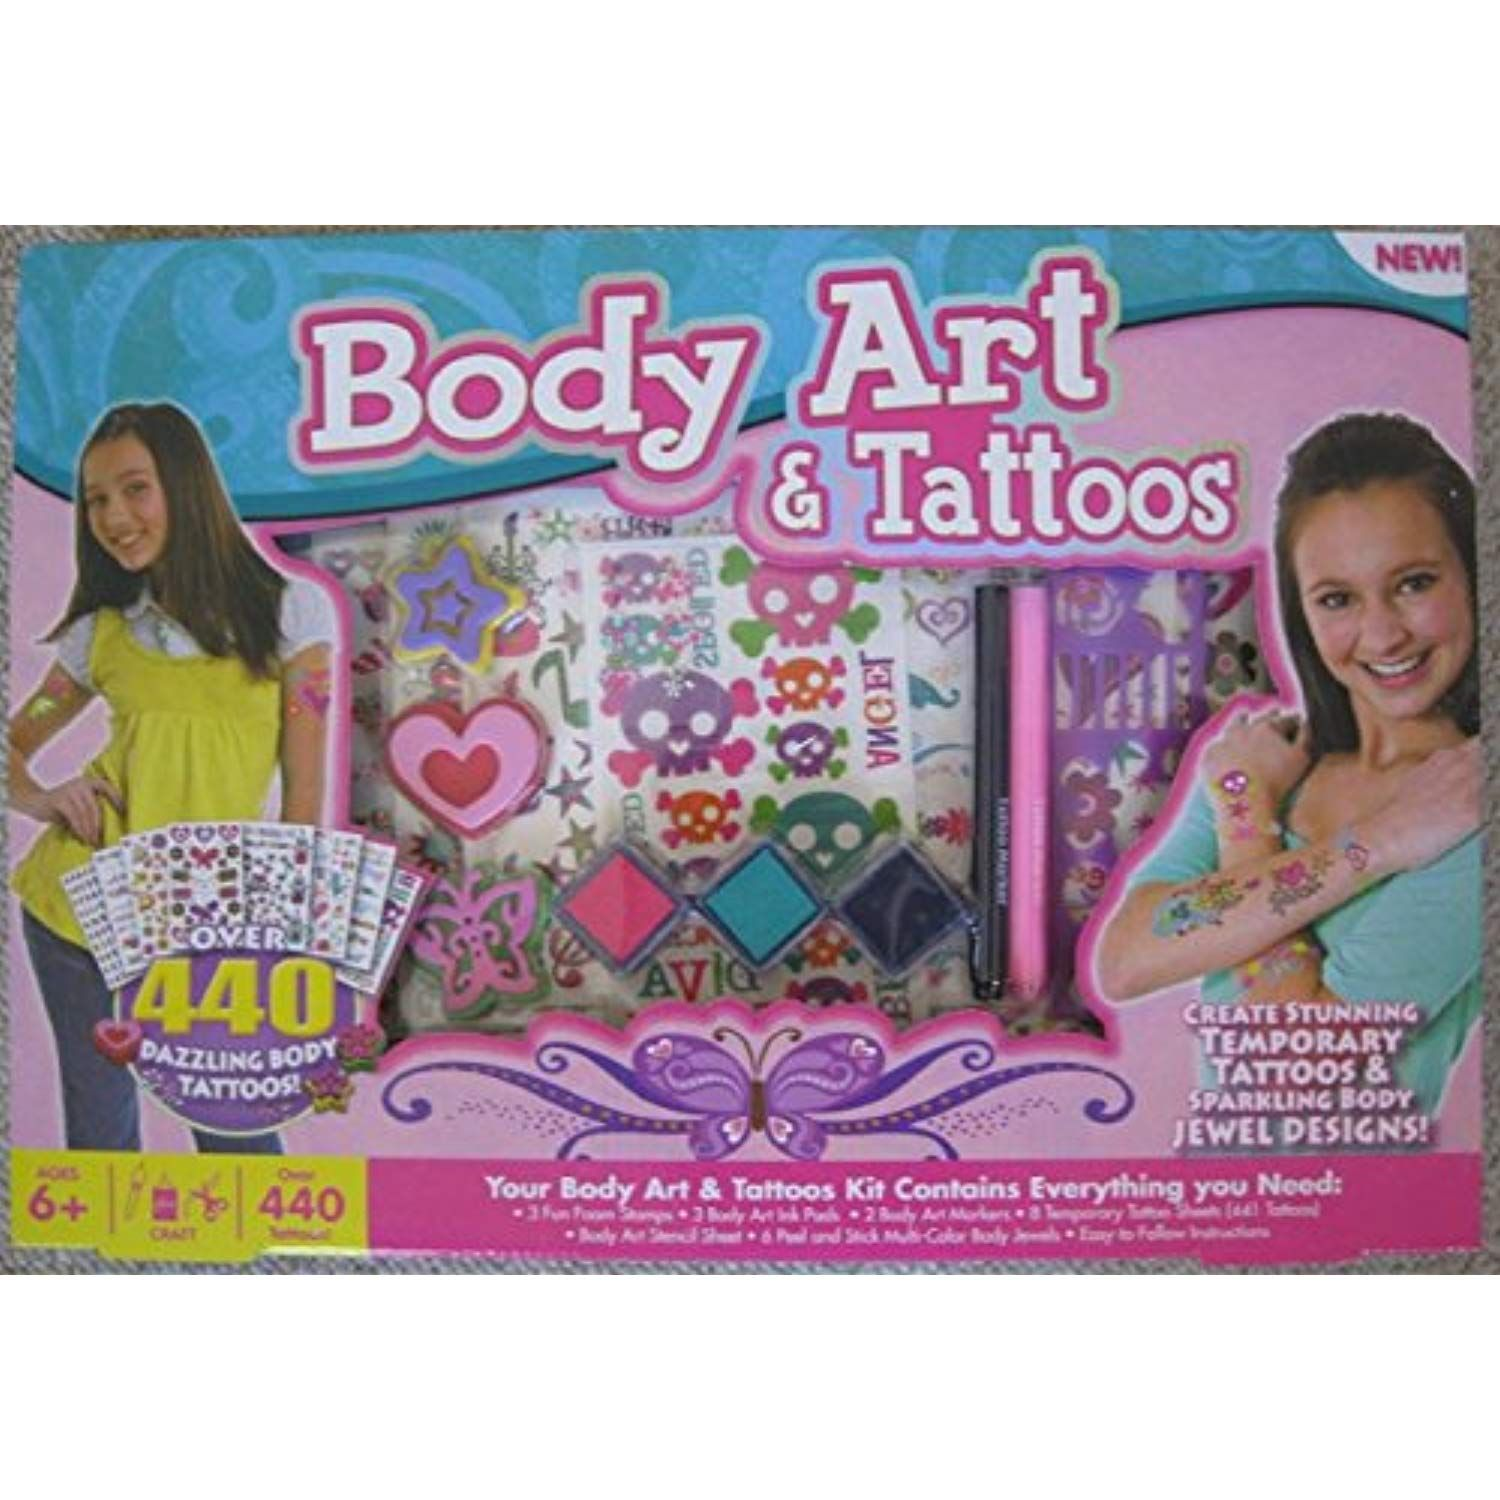 Body art and tattoos find out more about the great